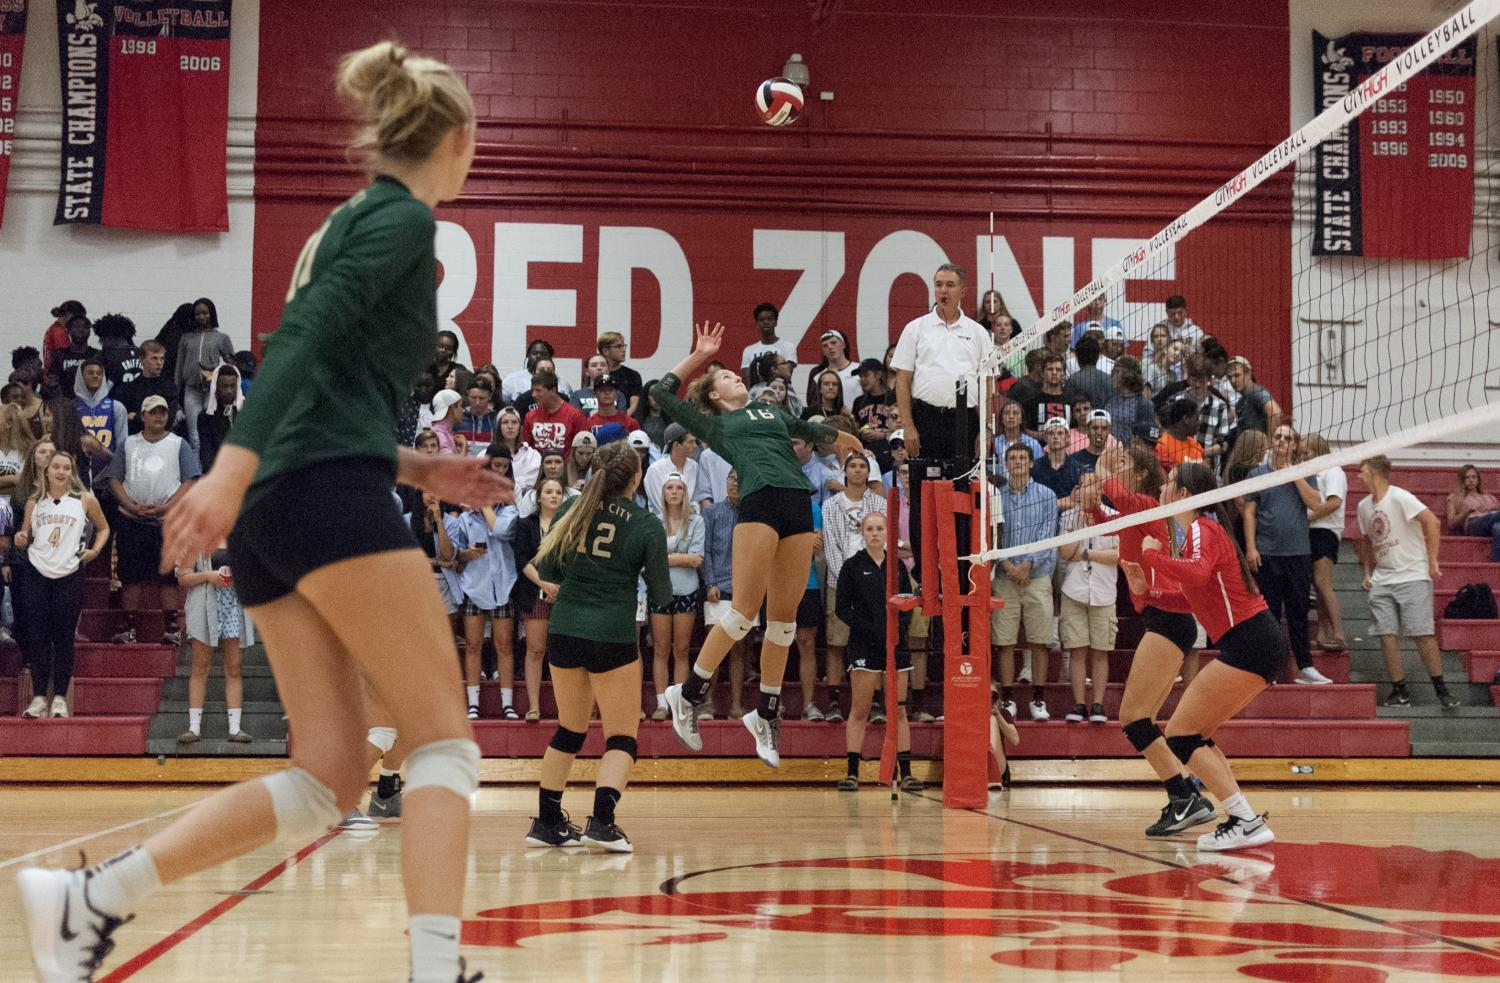 Emily+Burch+%2718+prepares+to+spike+the+ball+in+the+third+set+of+the+varsity+game+against+City+on+Sept.+5.